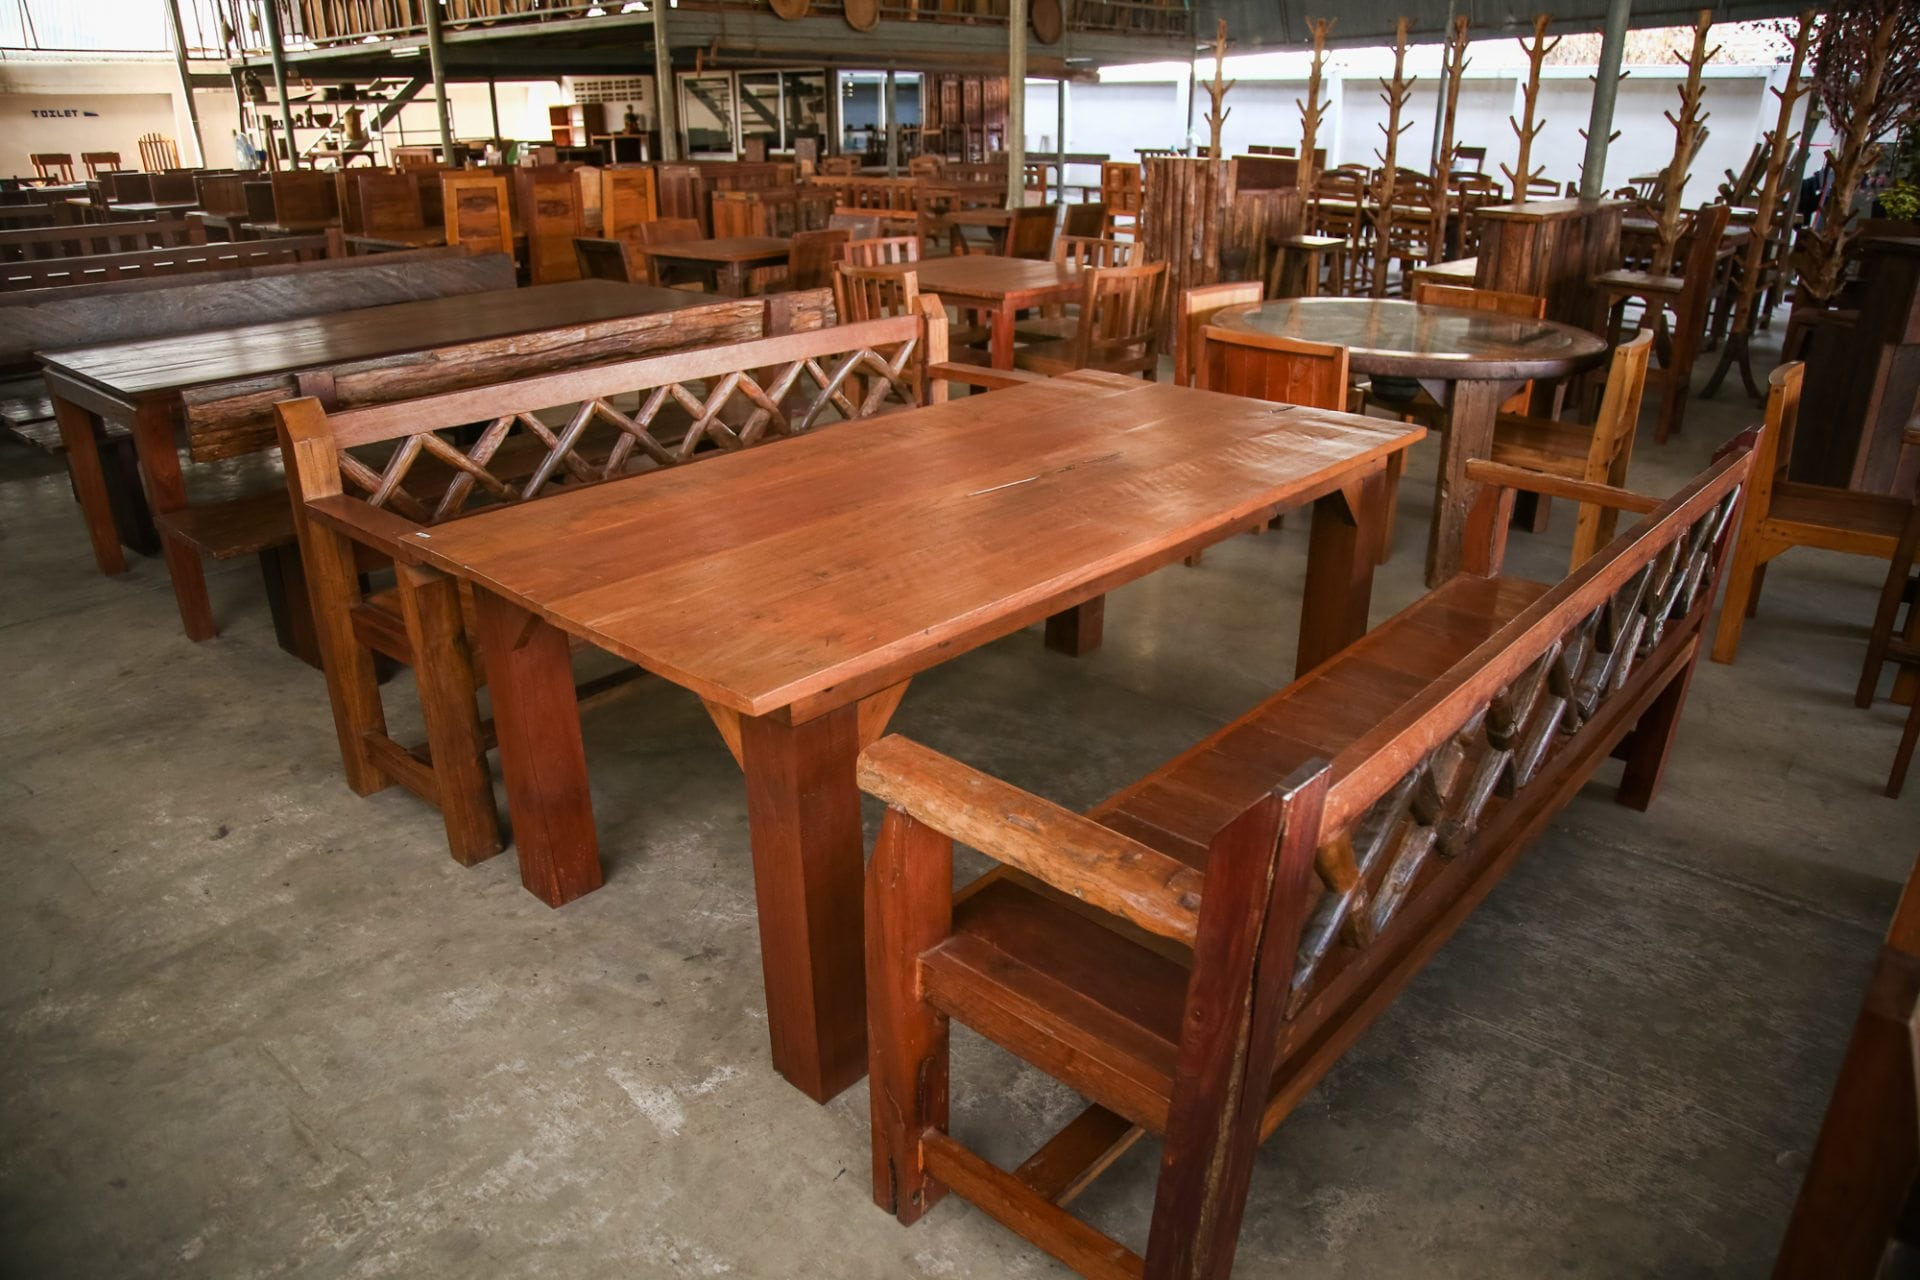 Chiang mai thailand wholesale handicrafts direct from for Thai furniture